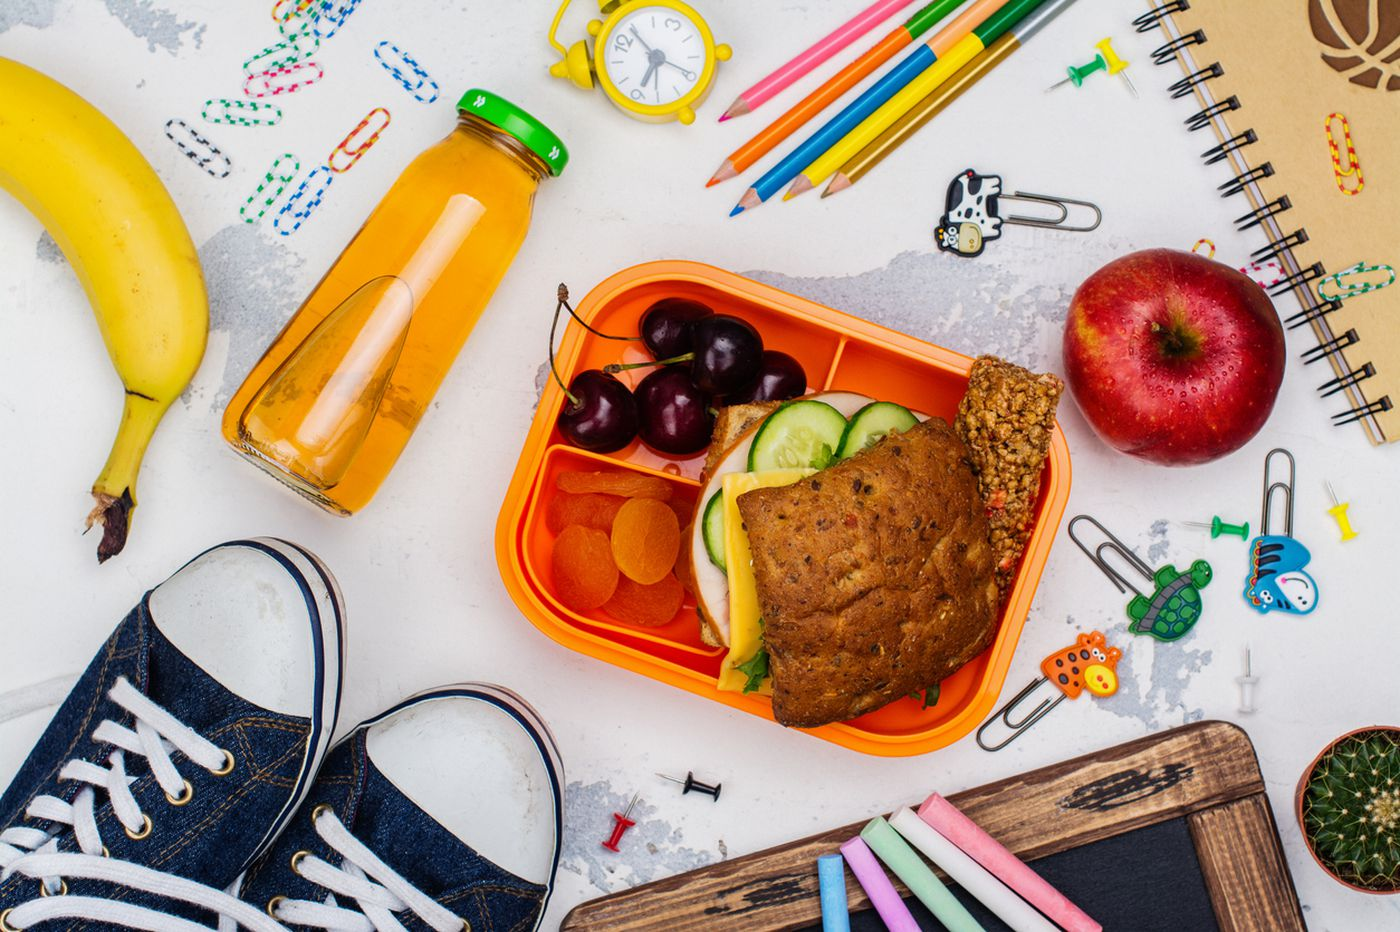 Philly school study finds kids gain weight depending on where breakfast is served